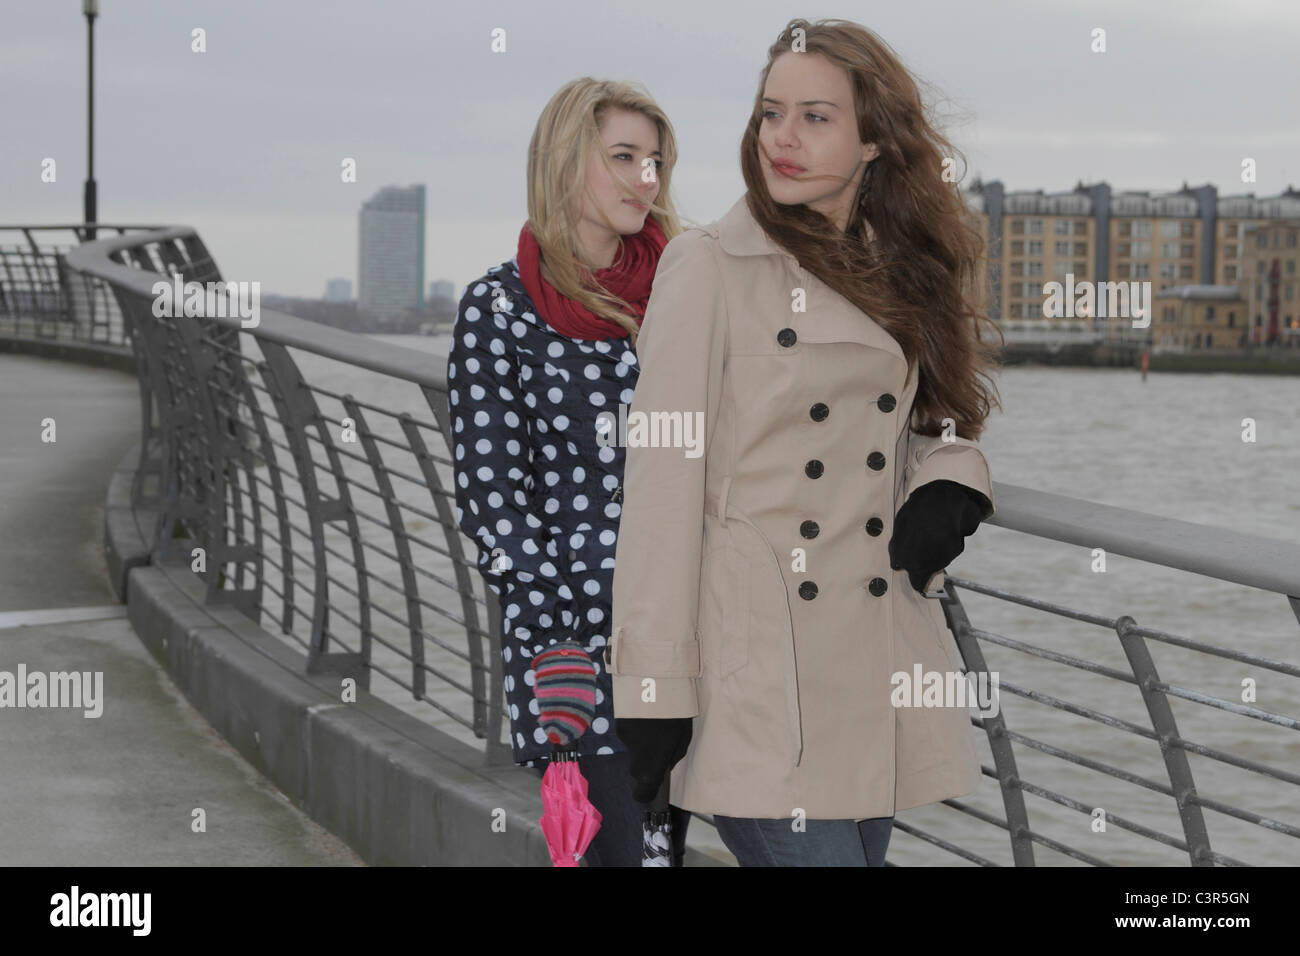 2 young women windswept at river - Stock Image